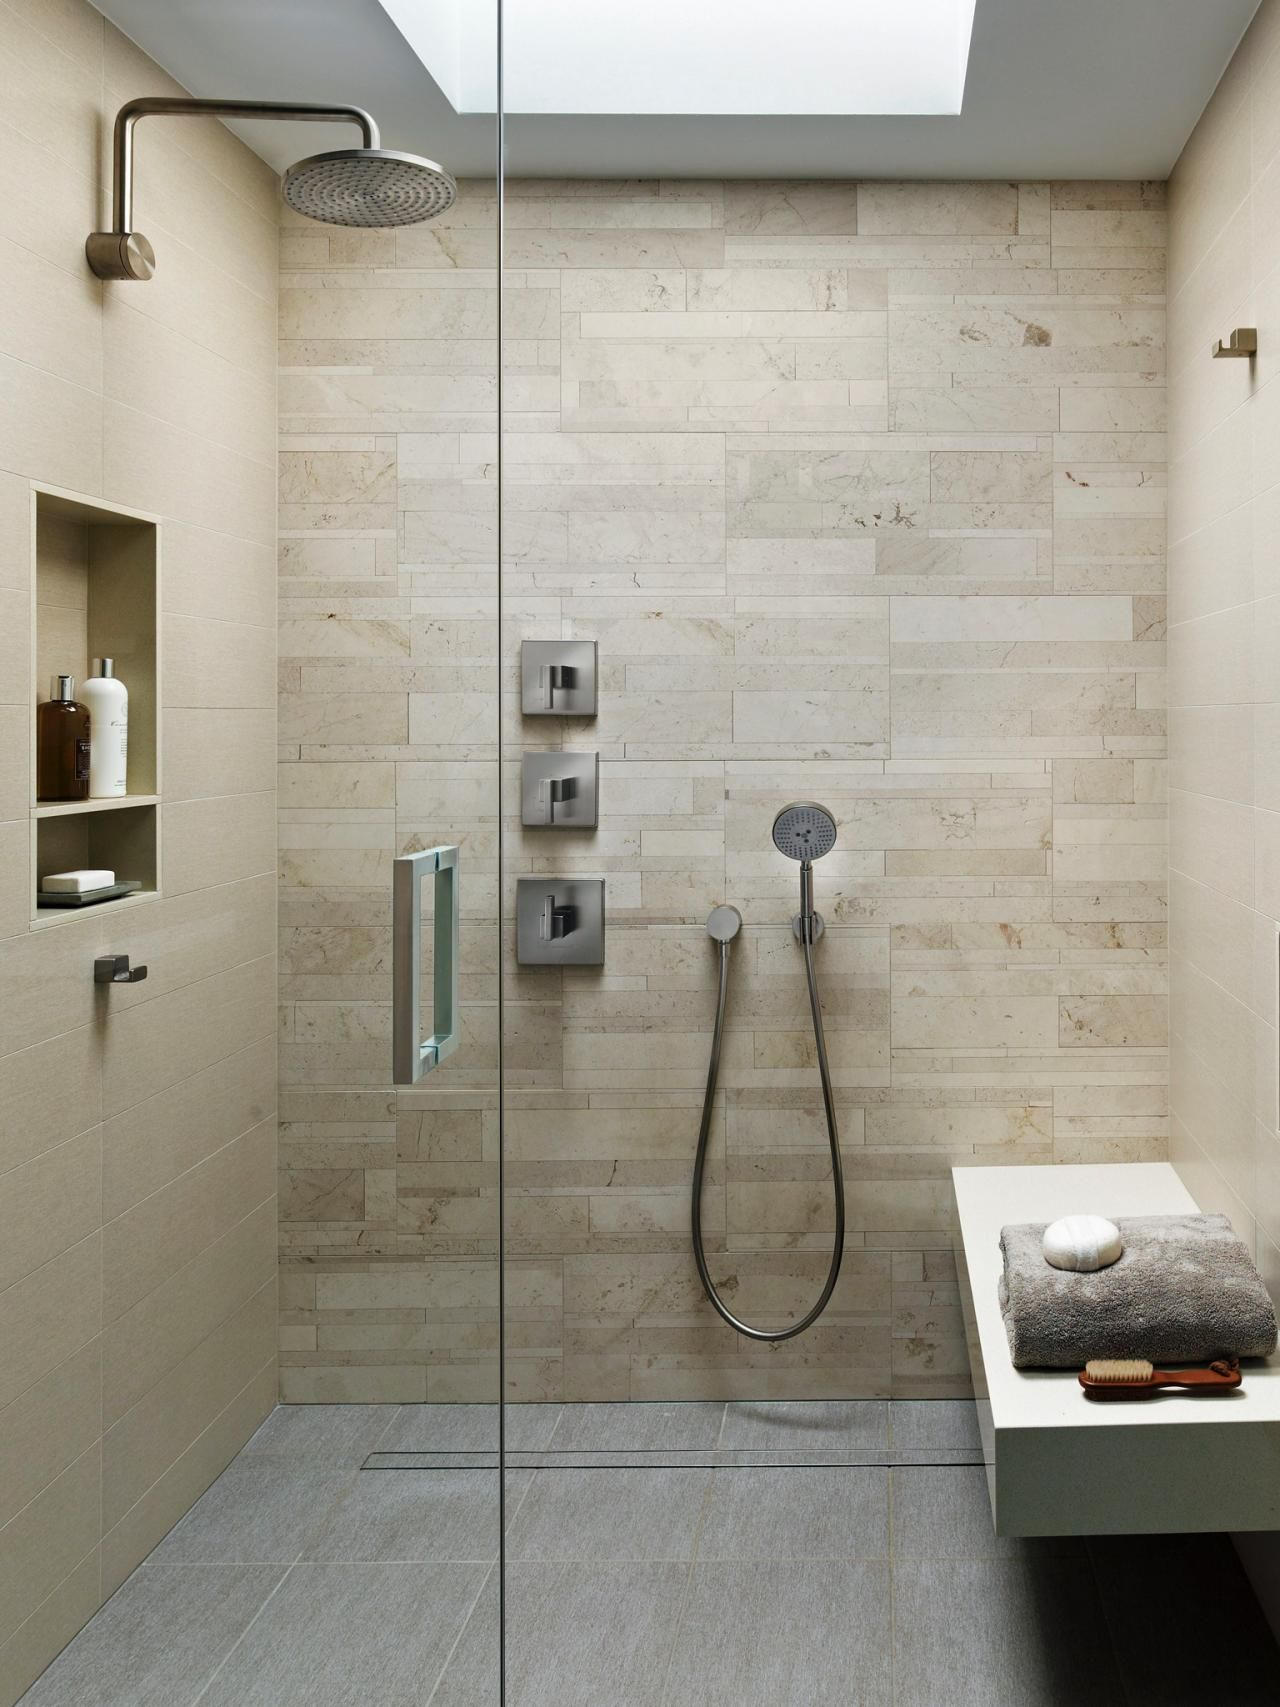 Badezimmer design wohnung browse through bathrooms with steam showers body jets and more